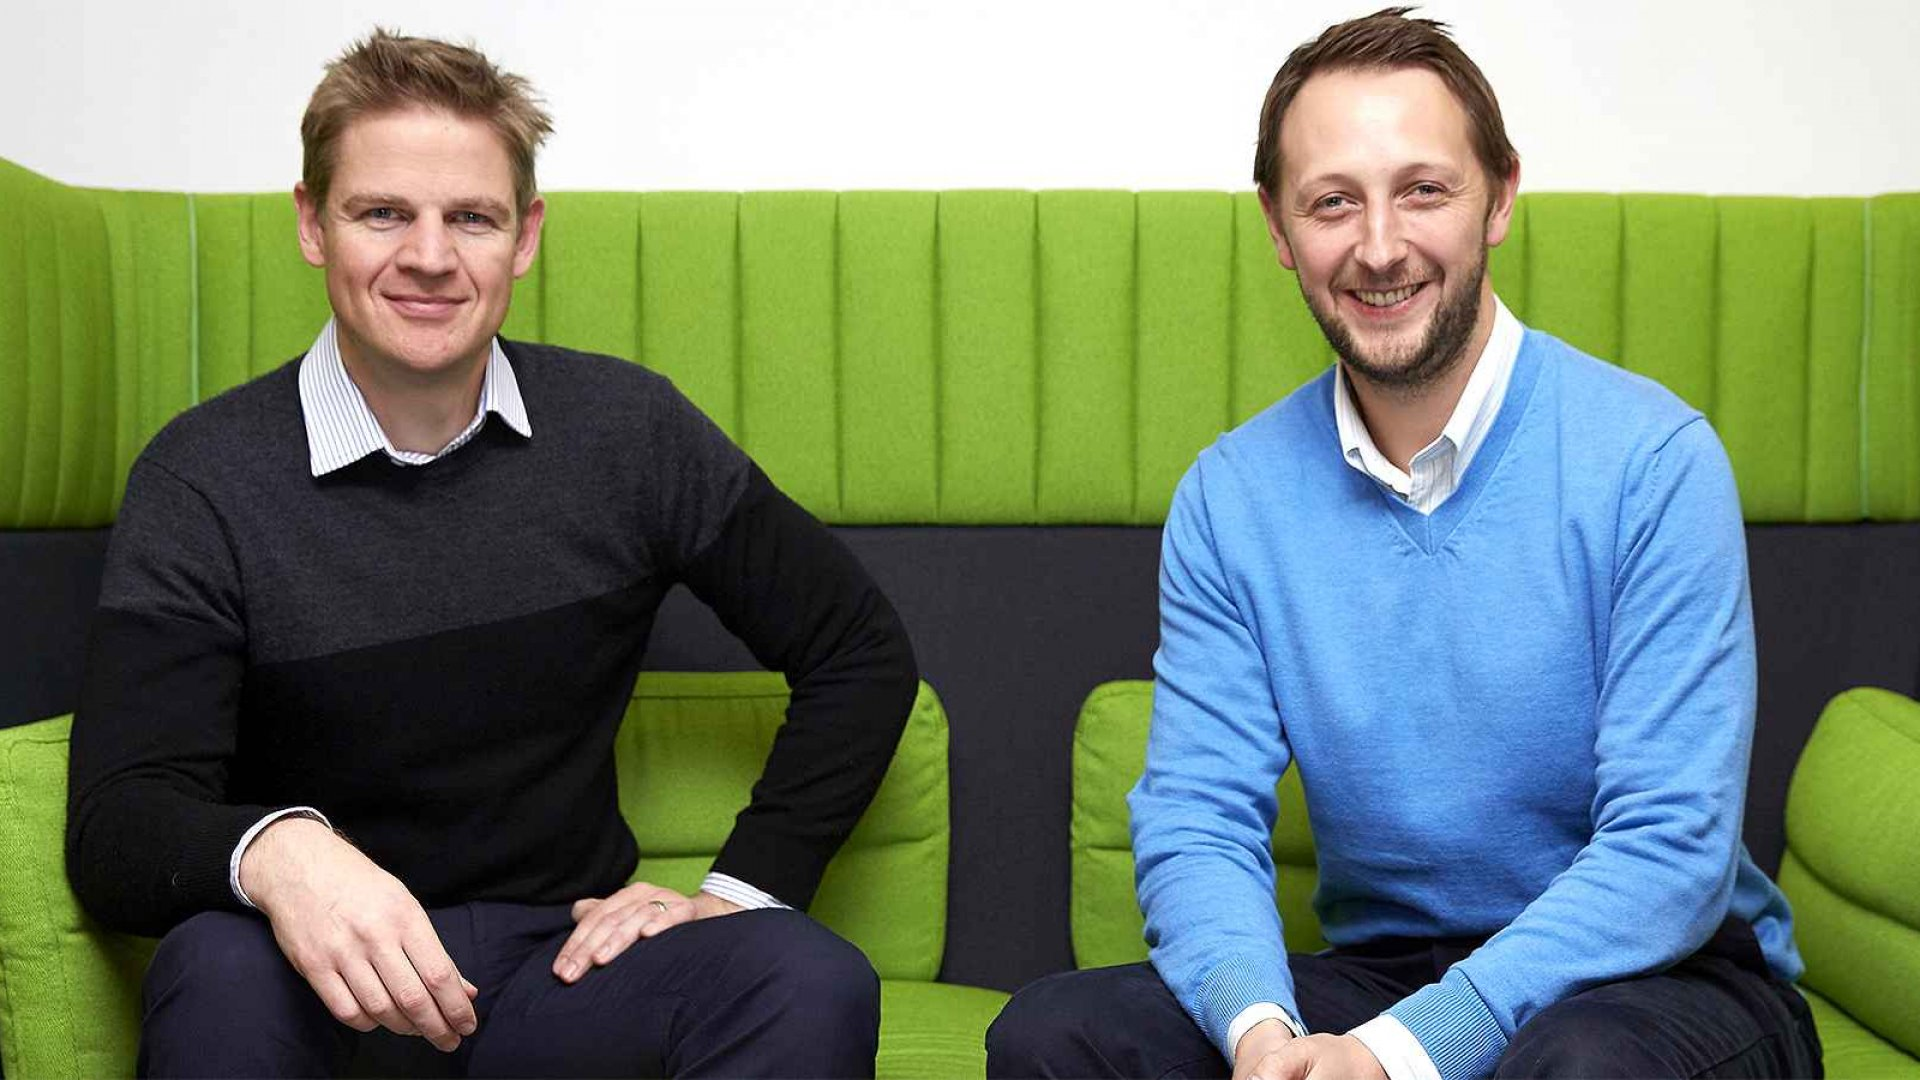 Nigel Eccles (right) and Tom Griffiths, two of FanDuel's co-founders.